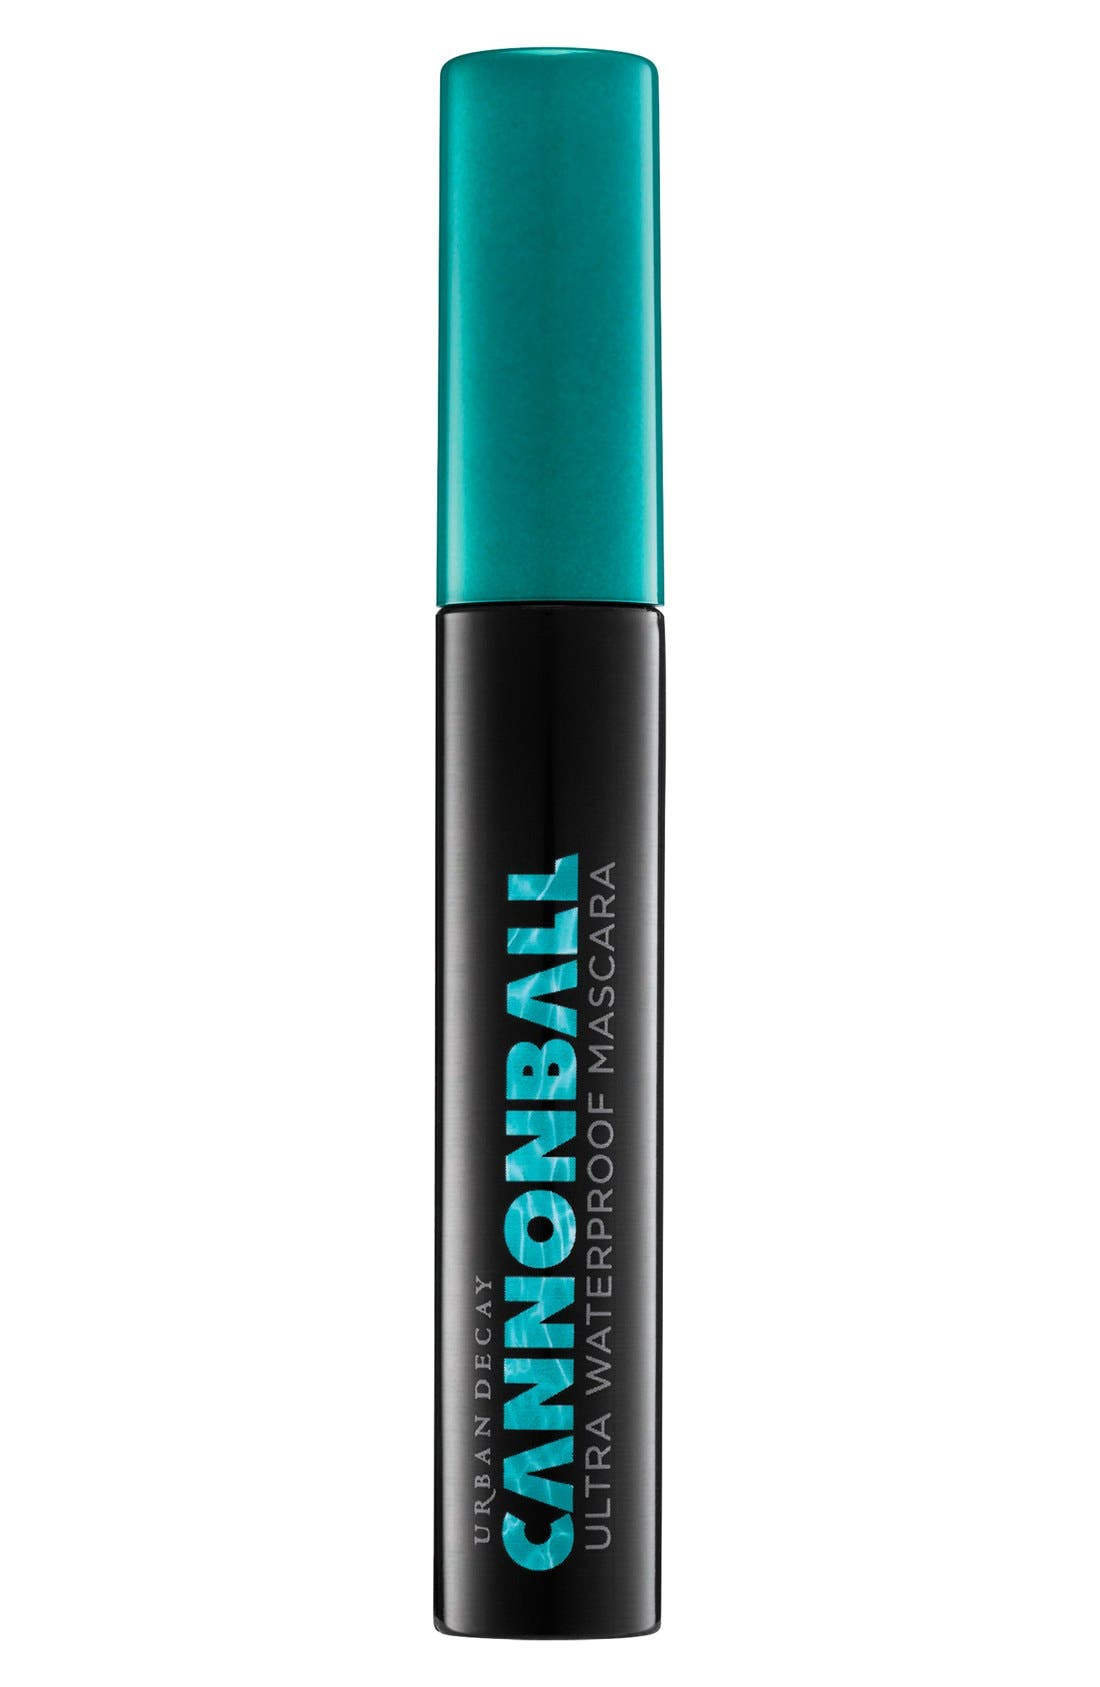 Cannonball Ultra Waterproof Mascara,                             Alternate thumbnail 2, color,                             001